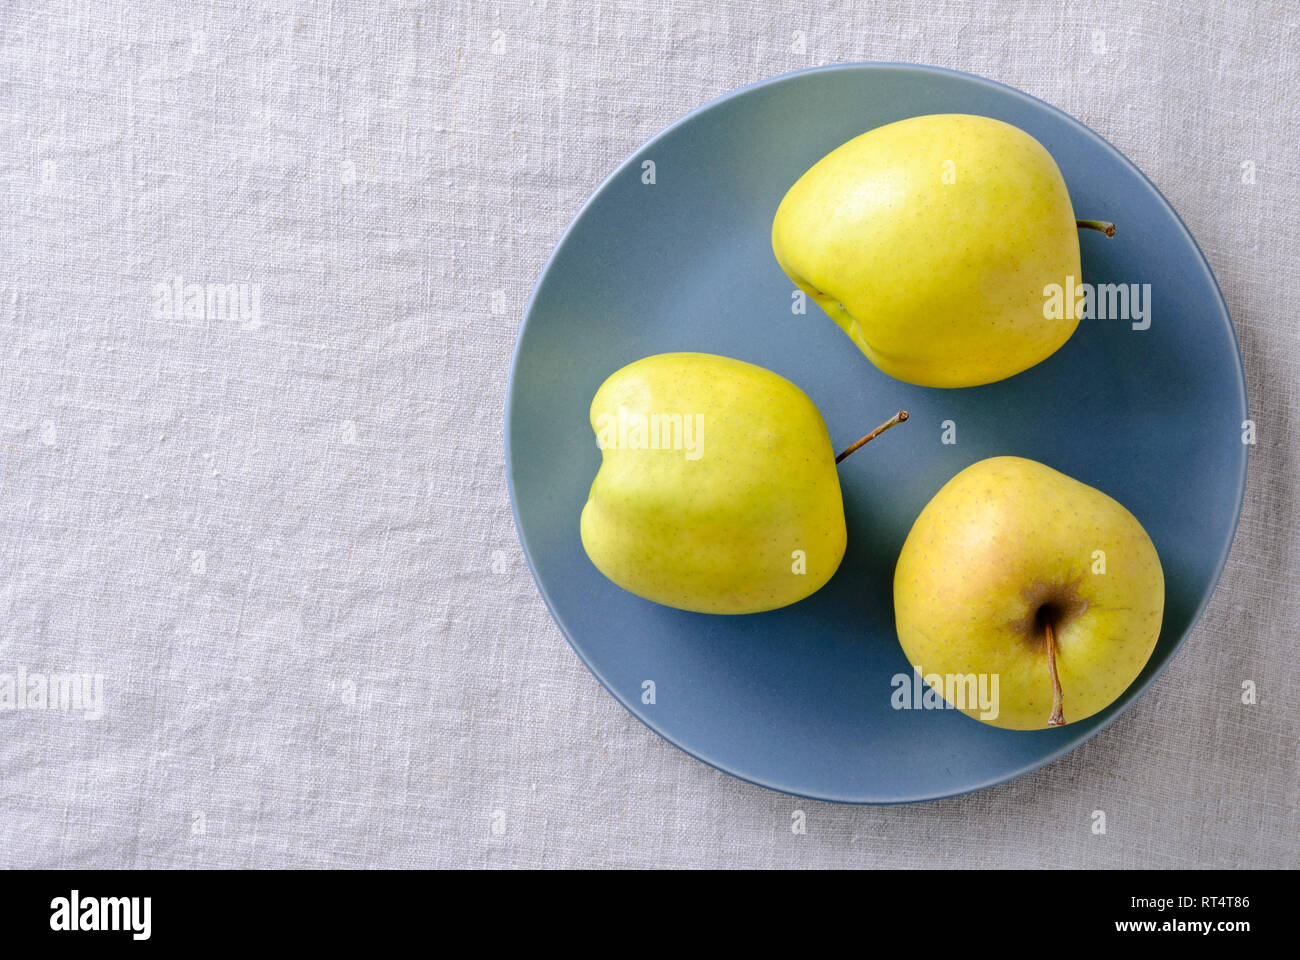 Ugly fresh food concept with fresh misshapen golden apples on a blue plate in a concept of aesthetic perceptions of food, top down on white with copy  - Stock Image